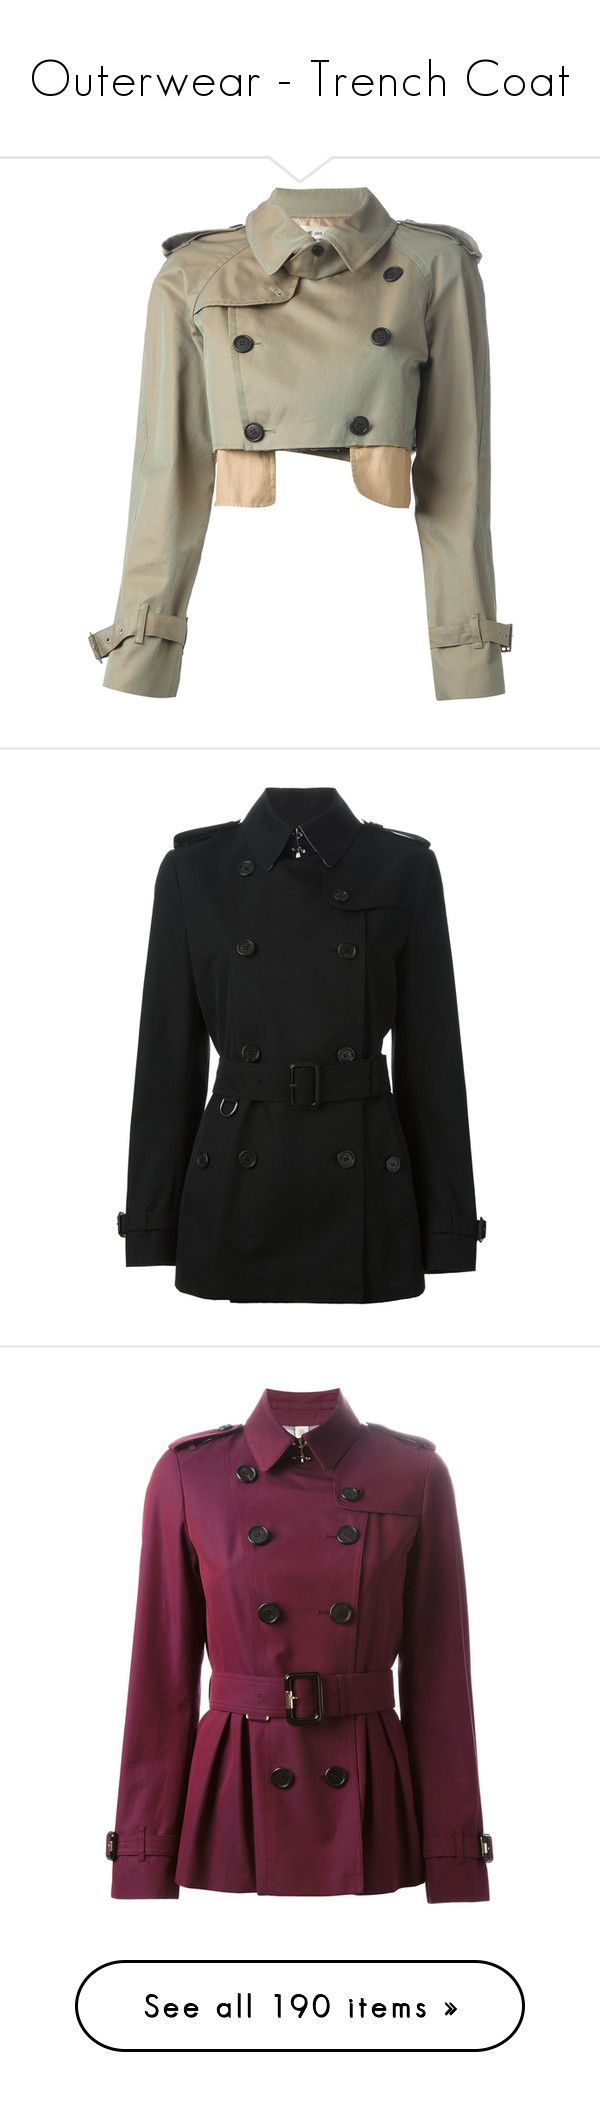 """""""Outerwear - Trench Coat"""" by giovanna1995 ❤ liked on Polyvore featuring Burberry, outerwear, coat, Trench, coats, jackets, coats & jackets, green, brown trench coat and short coat"""